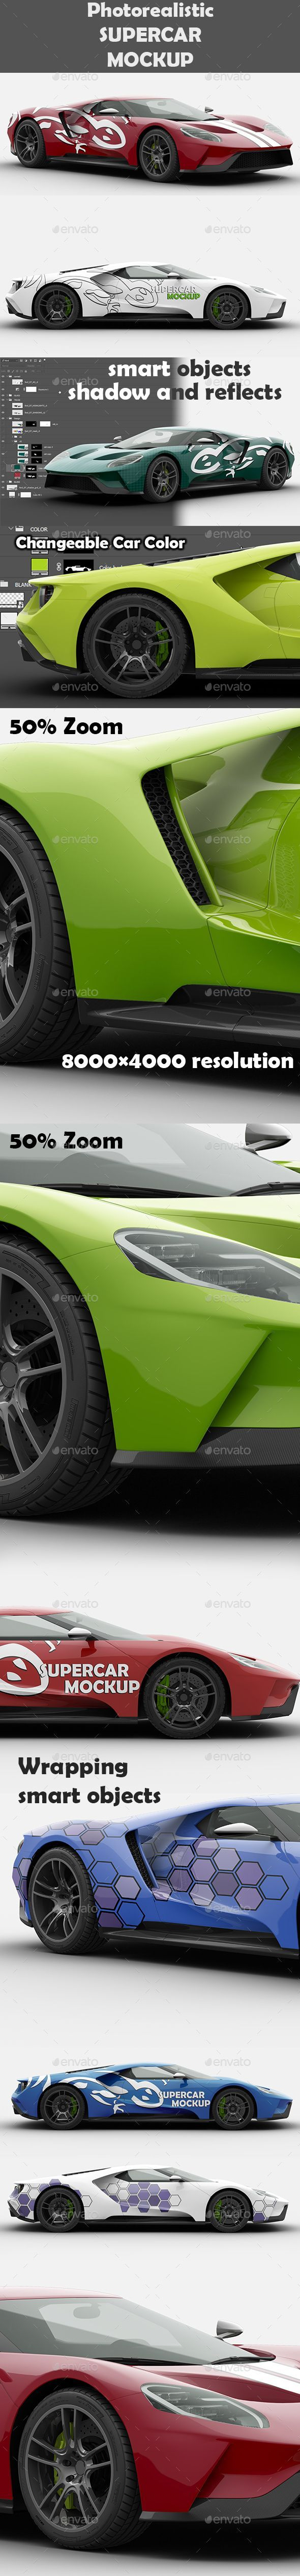 , Supercar Ford GT Mock-Up. Professional fully editable vehicle wrap mockup. #desi... , Supercar Ford GT Mock-Up. Professional fully editable vehicle wrap mockup. #design #identity #mockup #ProductDesign #CarDesign...